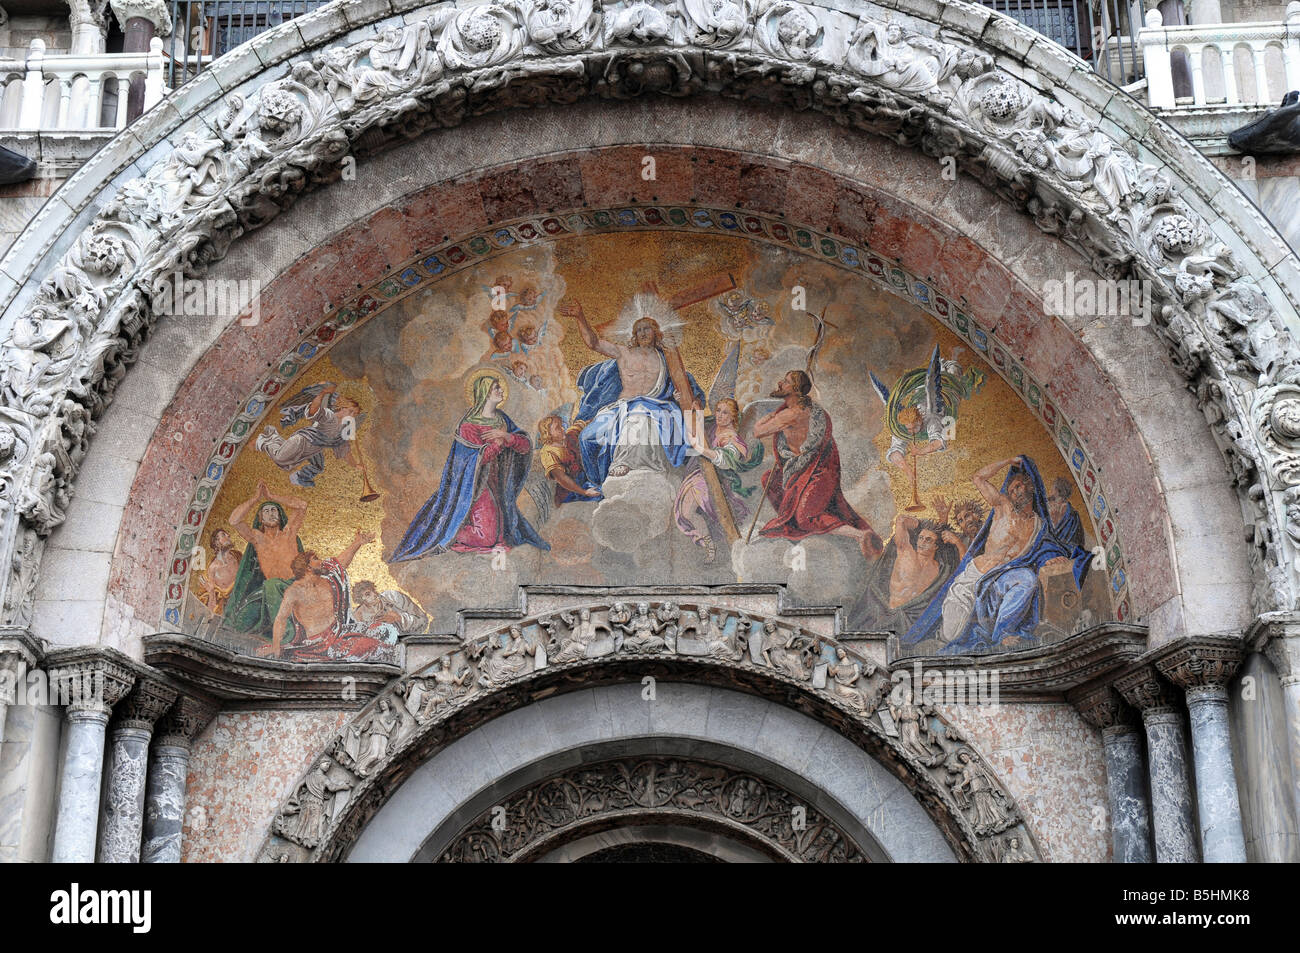 The Last Judgment mosaic above the main central portal at Basilica ...